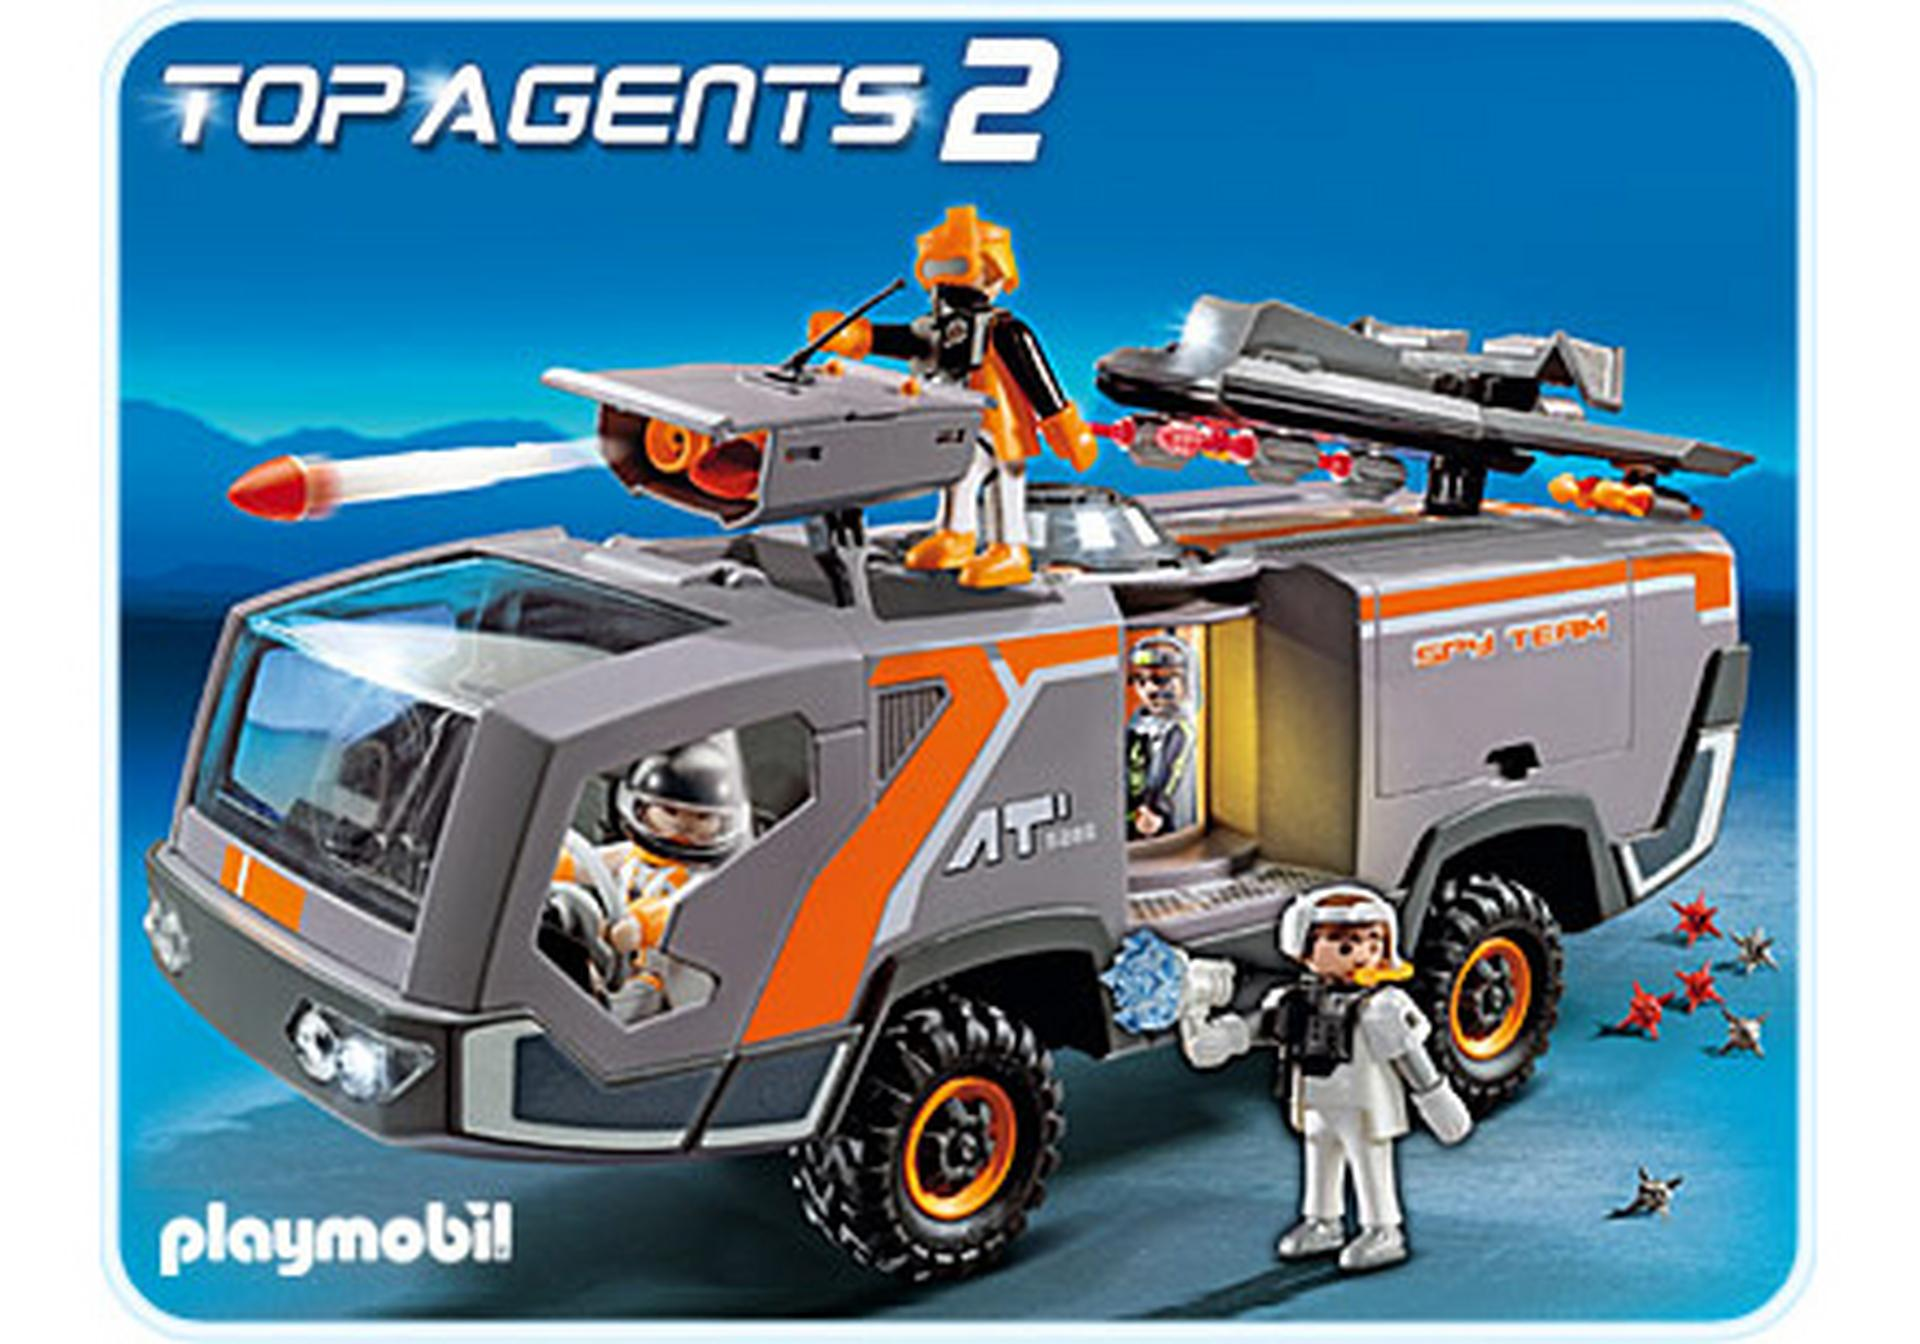 fahrzeuge malvorlage topagent playmobil truck  Coloring and